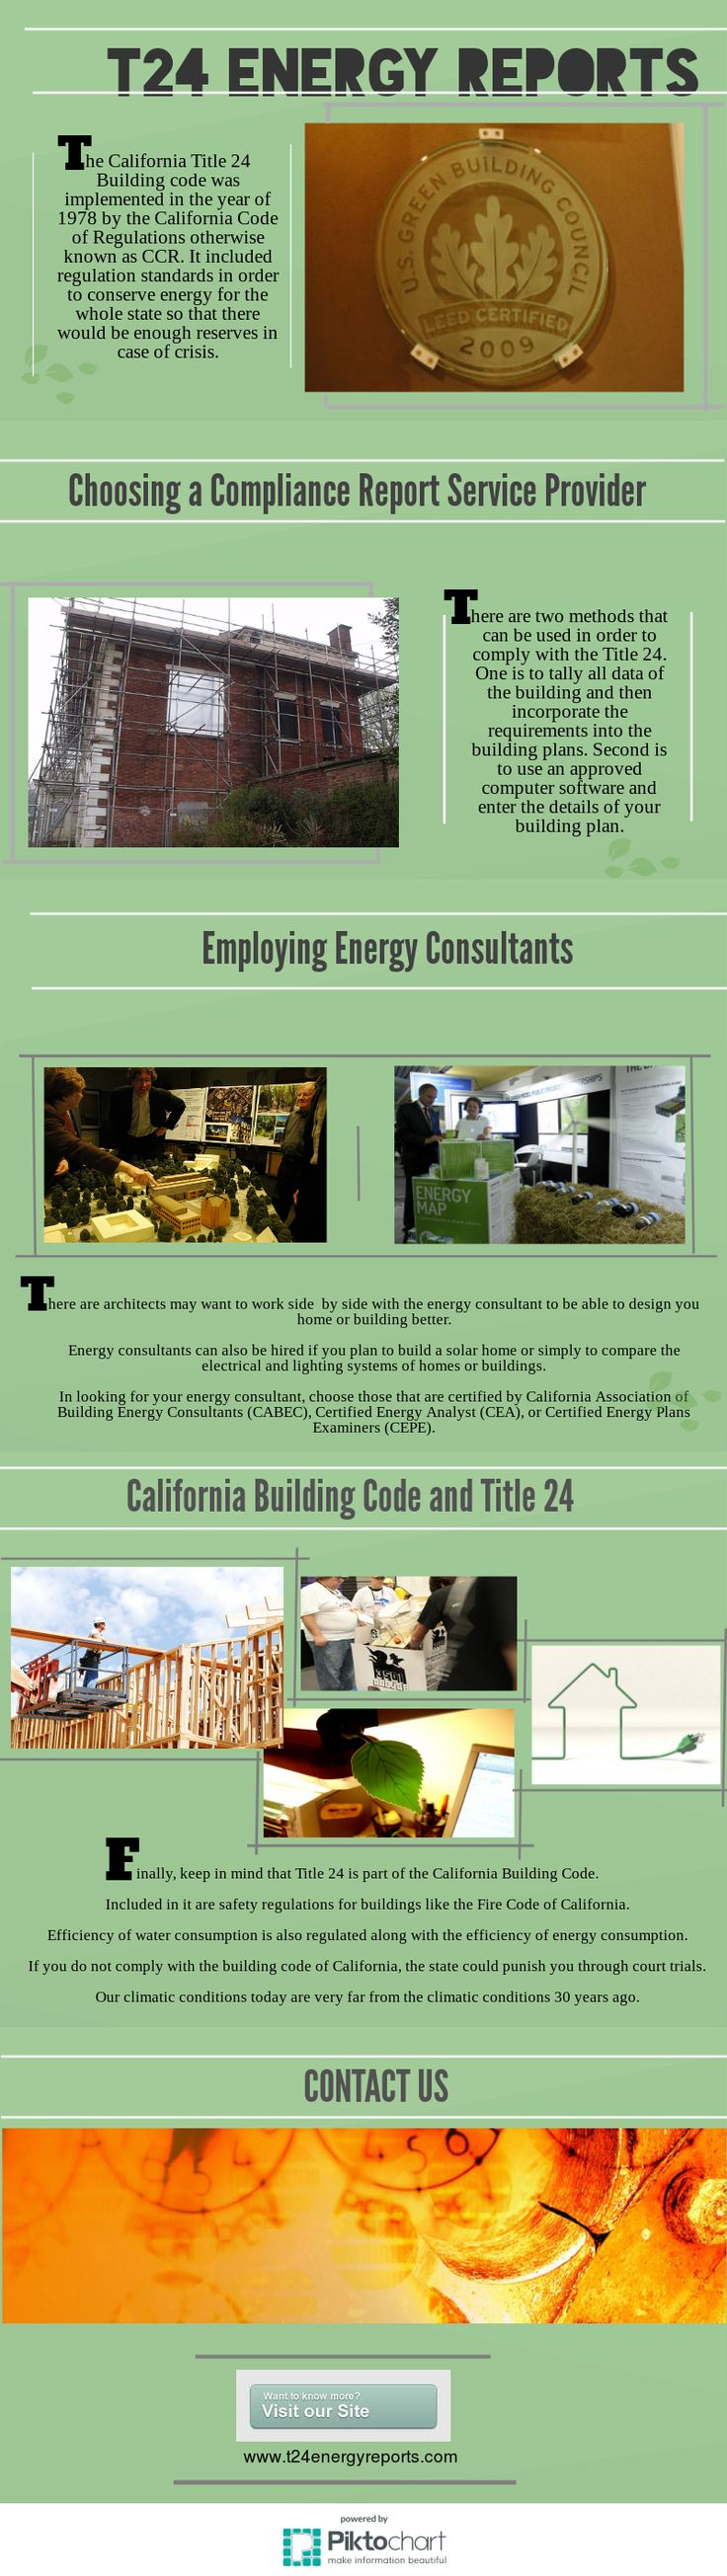 Title 24 is a law implemented in the State of California in order to achieve energy efficiency for buildings.  The law came to being in the year 1978 because during that time, California has experienced energy crisis.